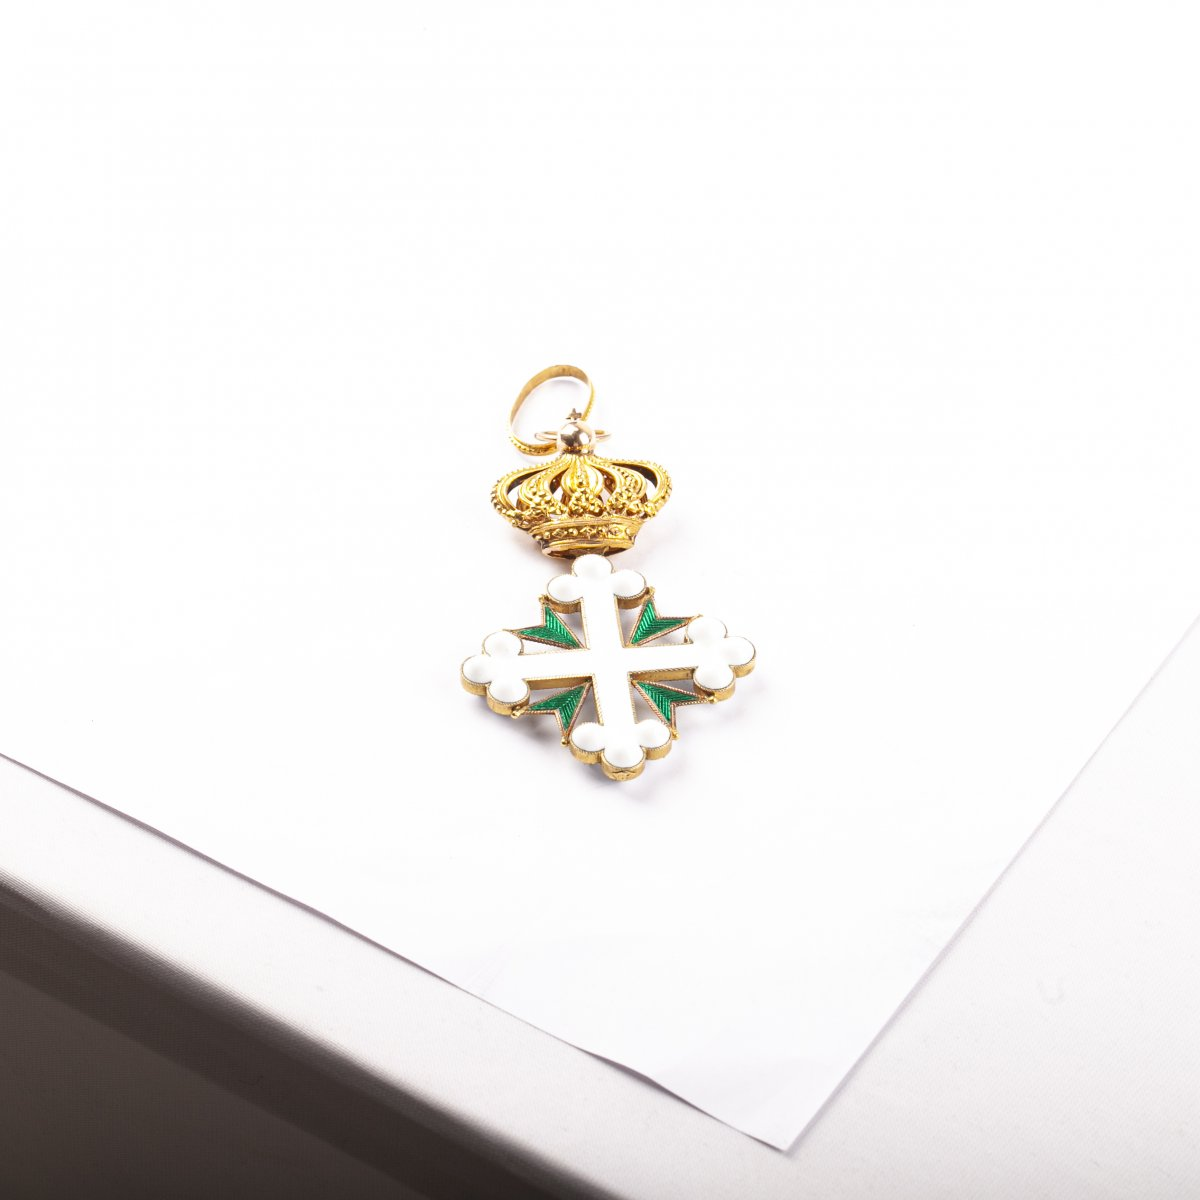 The Gold And Enamel Cross Of The Order Of Saint Maurice And Lazarus With Ribbon -photo-2